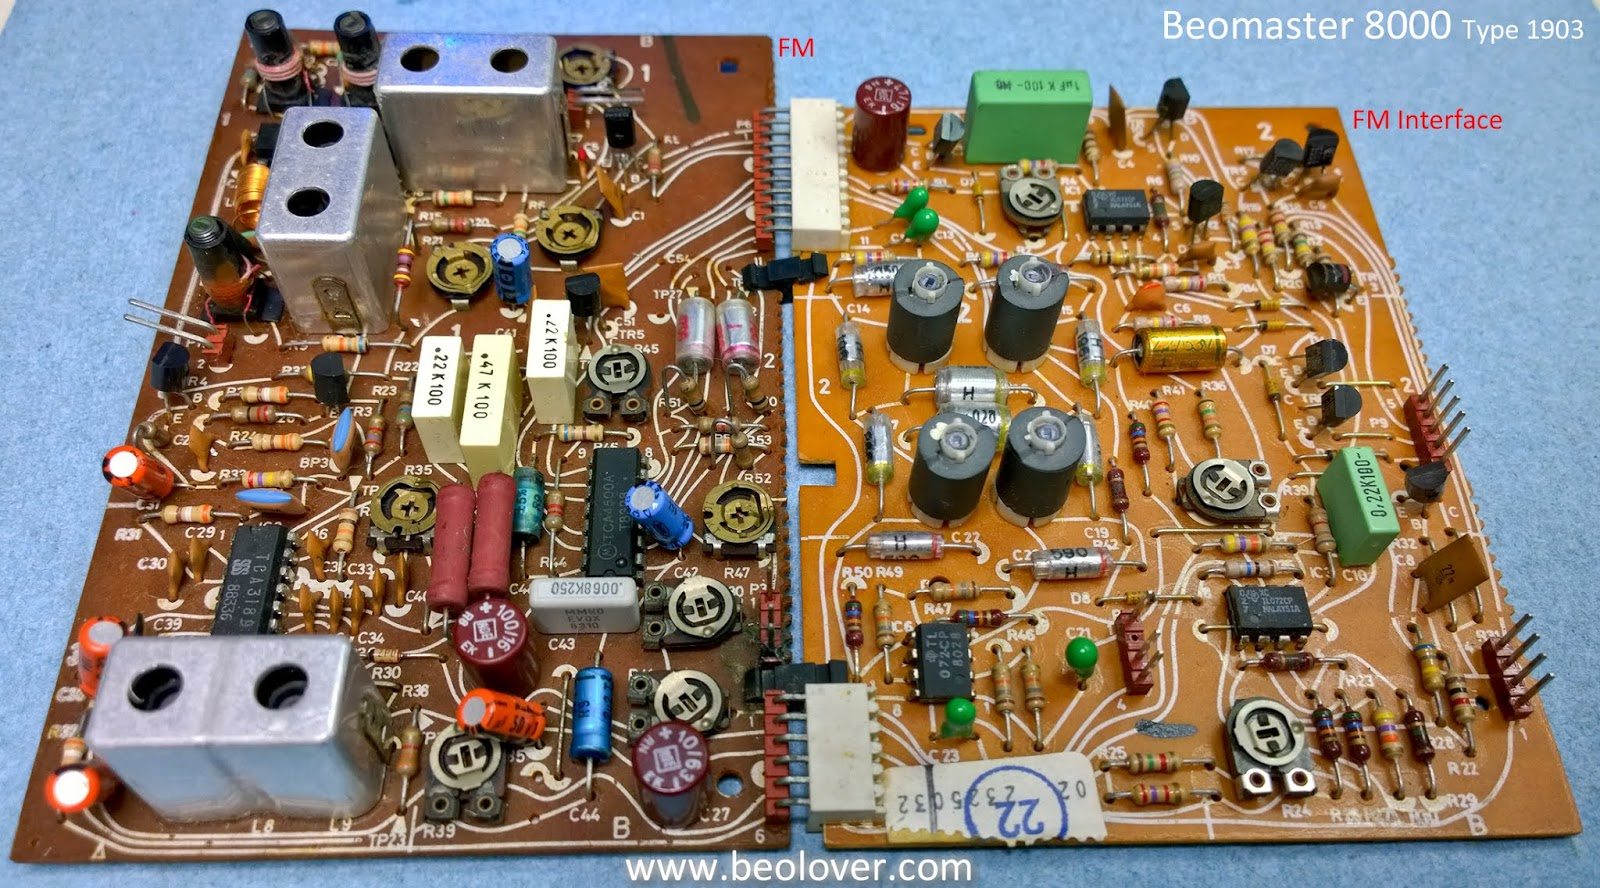 Beolover Texas Beomaster 8000 Fm And Interface Boards Circuit Board I Removed The Components Was Replacing You Can See Corroded Area Am Talking About